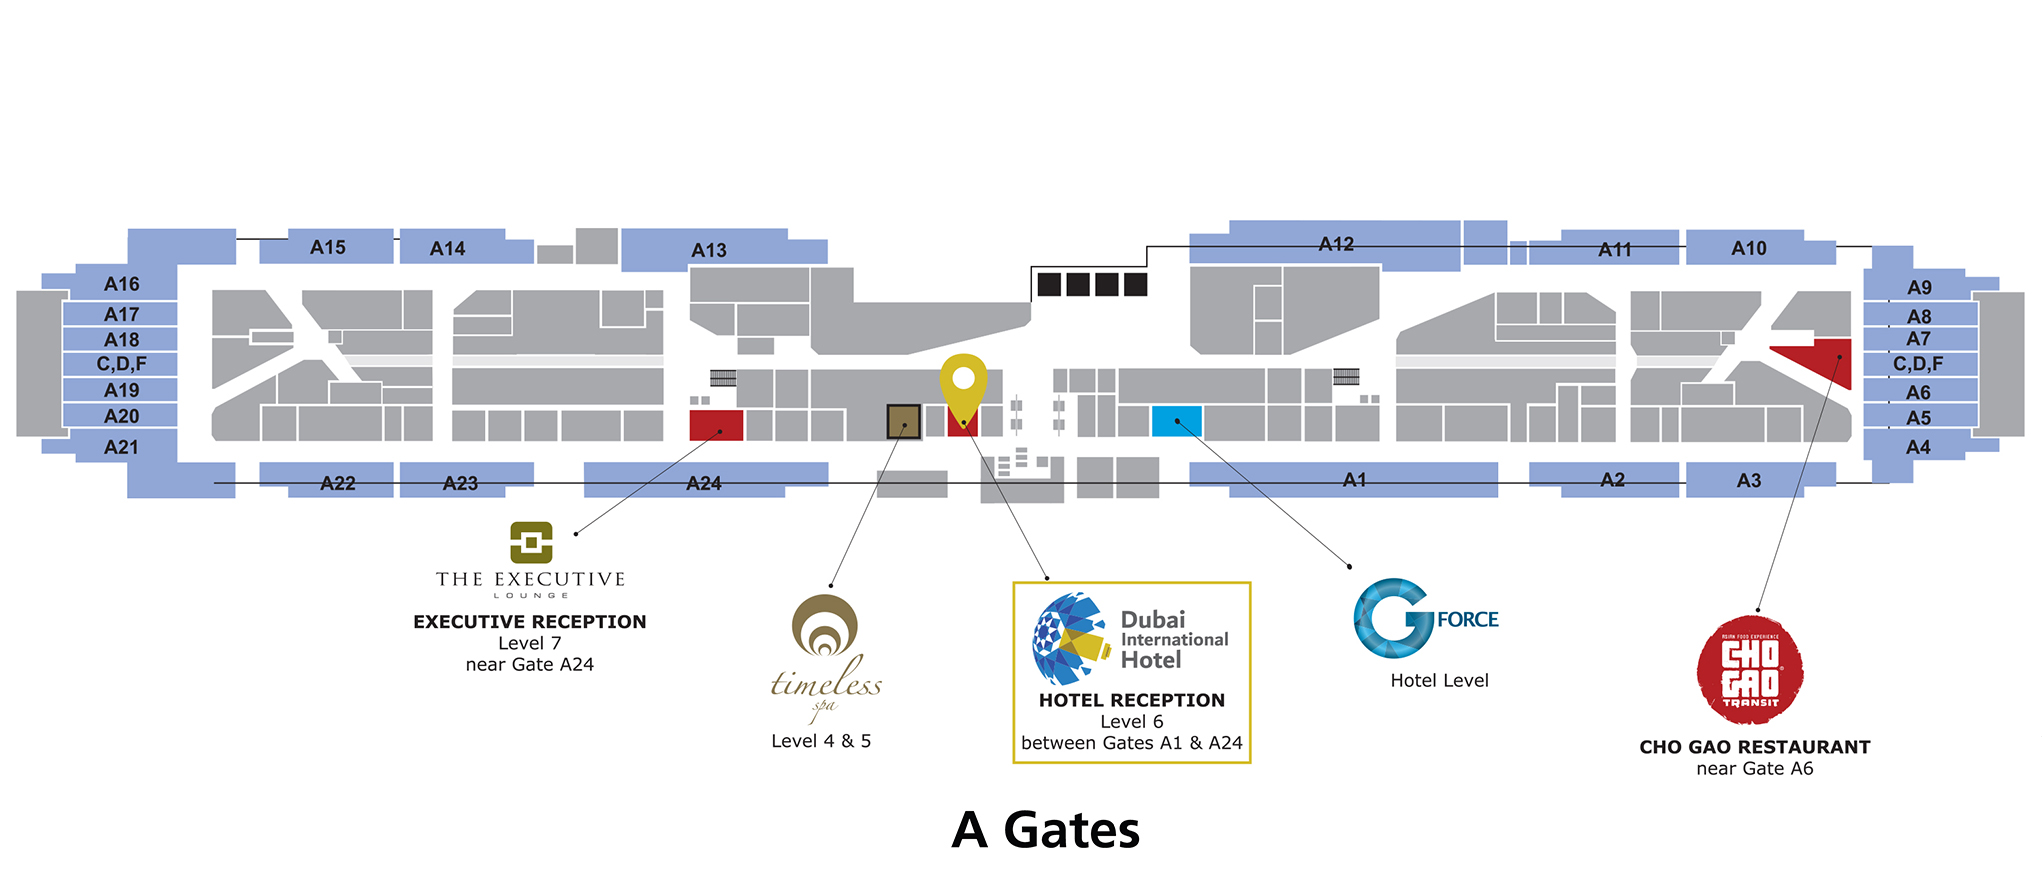 Dubai International Airport Hotel | Hotel-Location Map on